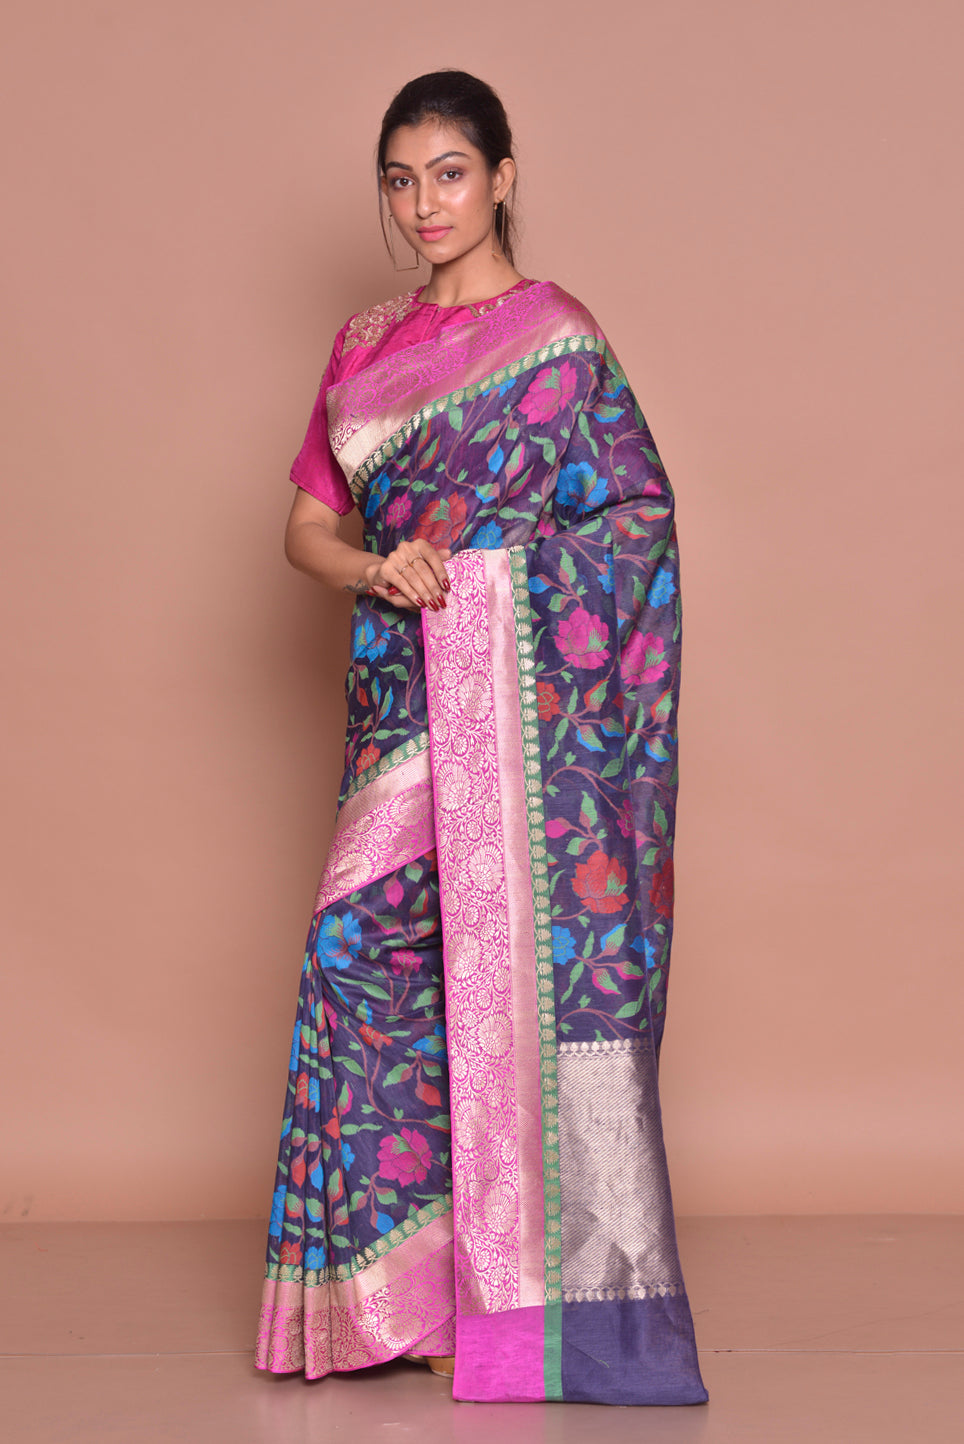 Buy gorgeous blue floral jute Banarasi saree online in USA with zari border and pink embroidered saree blouse. Set ethnic fashion goals with exquisite designer sarees with blouse, Banarasi sarees, Kanchipuram saris from Pure Elegance Indian luxury clothing store in USA.-side